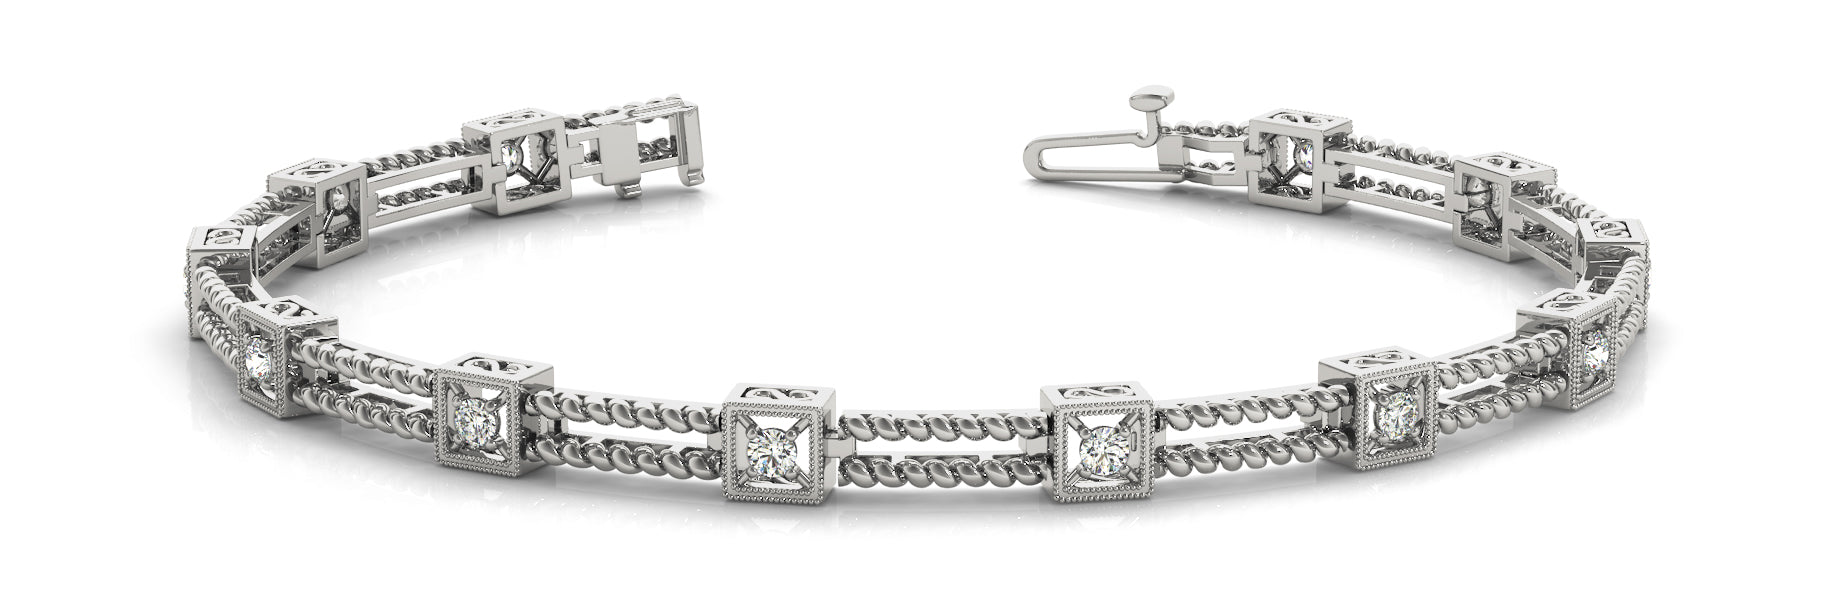 Fancy Diamond Bracelet Ladies 0.31ct tw - 14kt White Gold